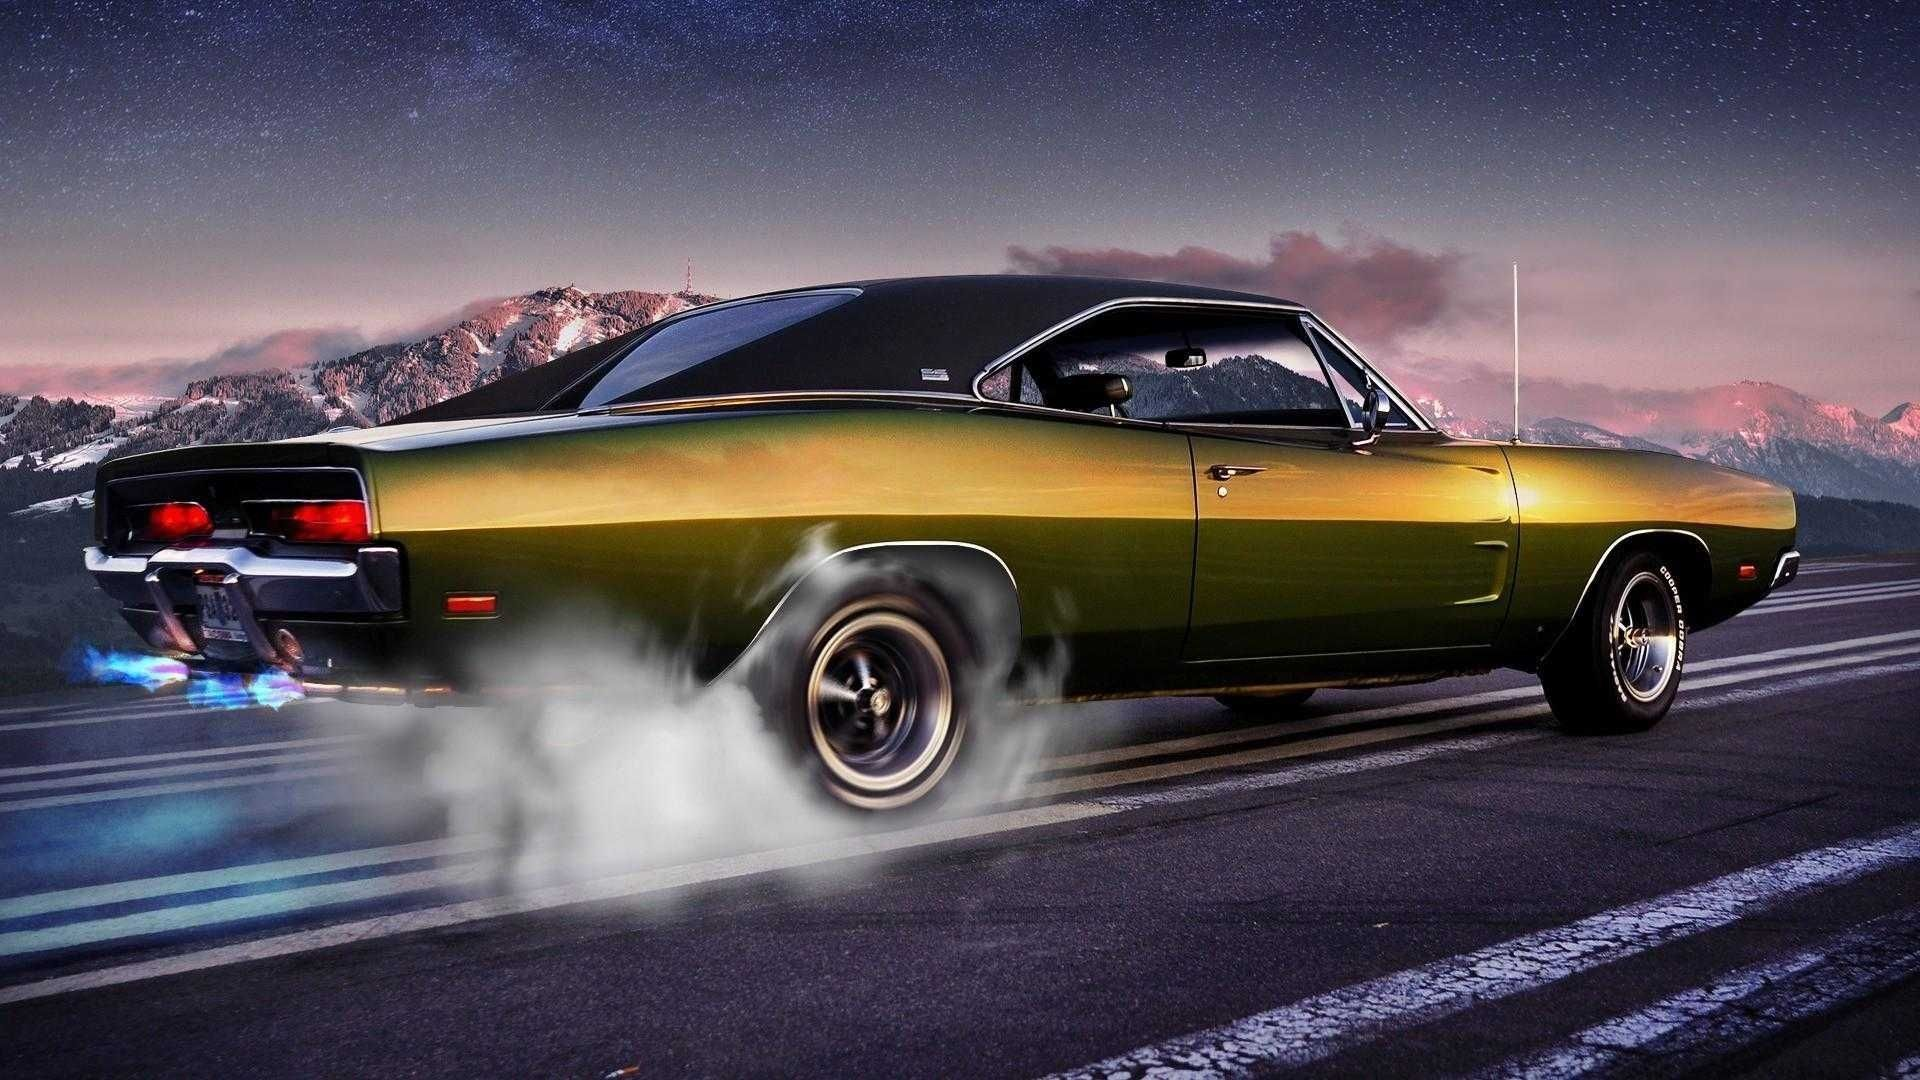 10 Top Classic Muscle Cars Wallpapers Full Hd 1920 1080 For Pc